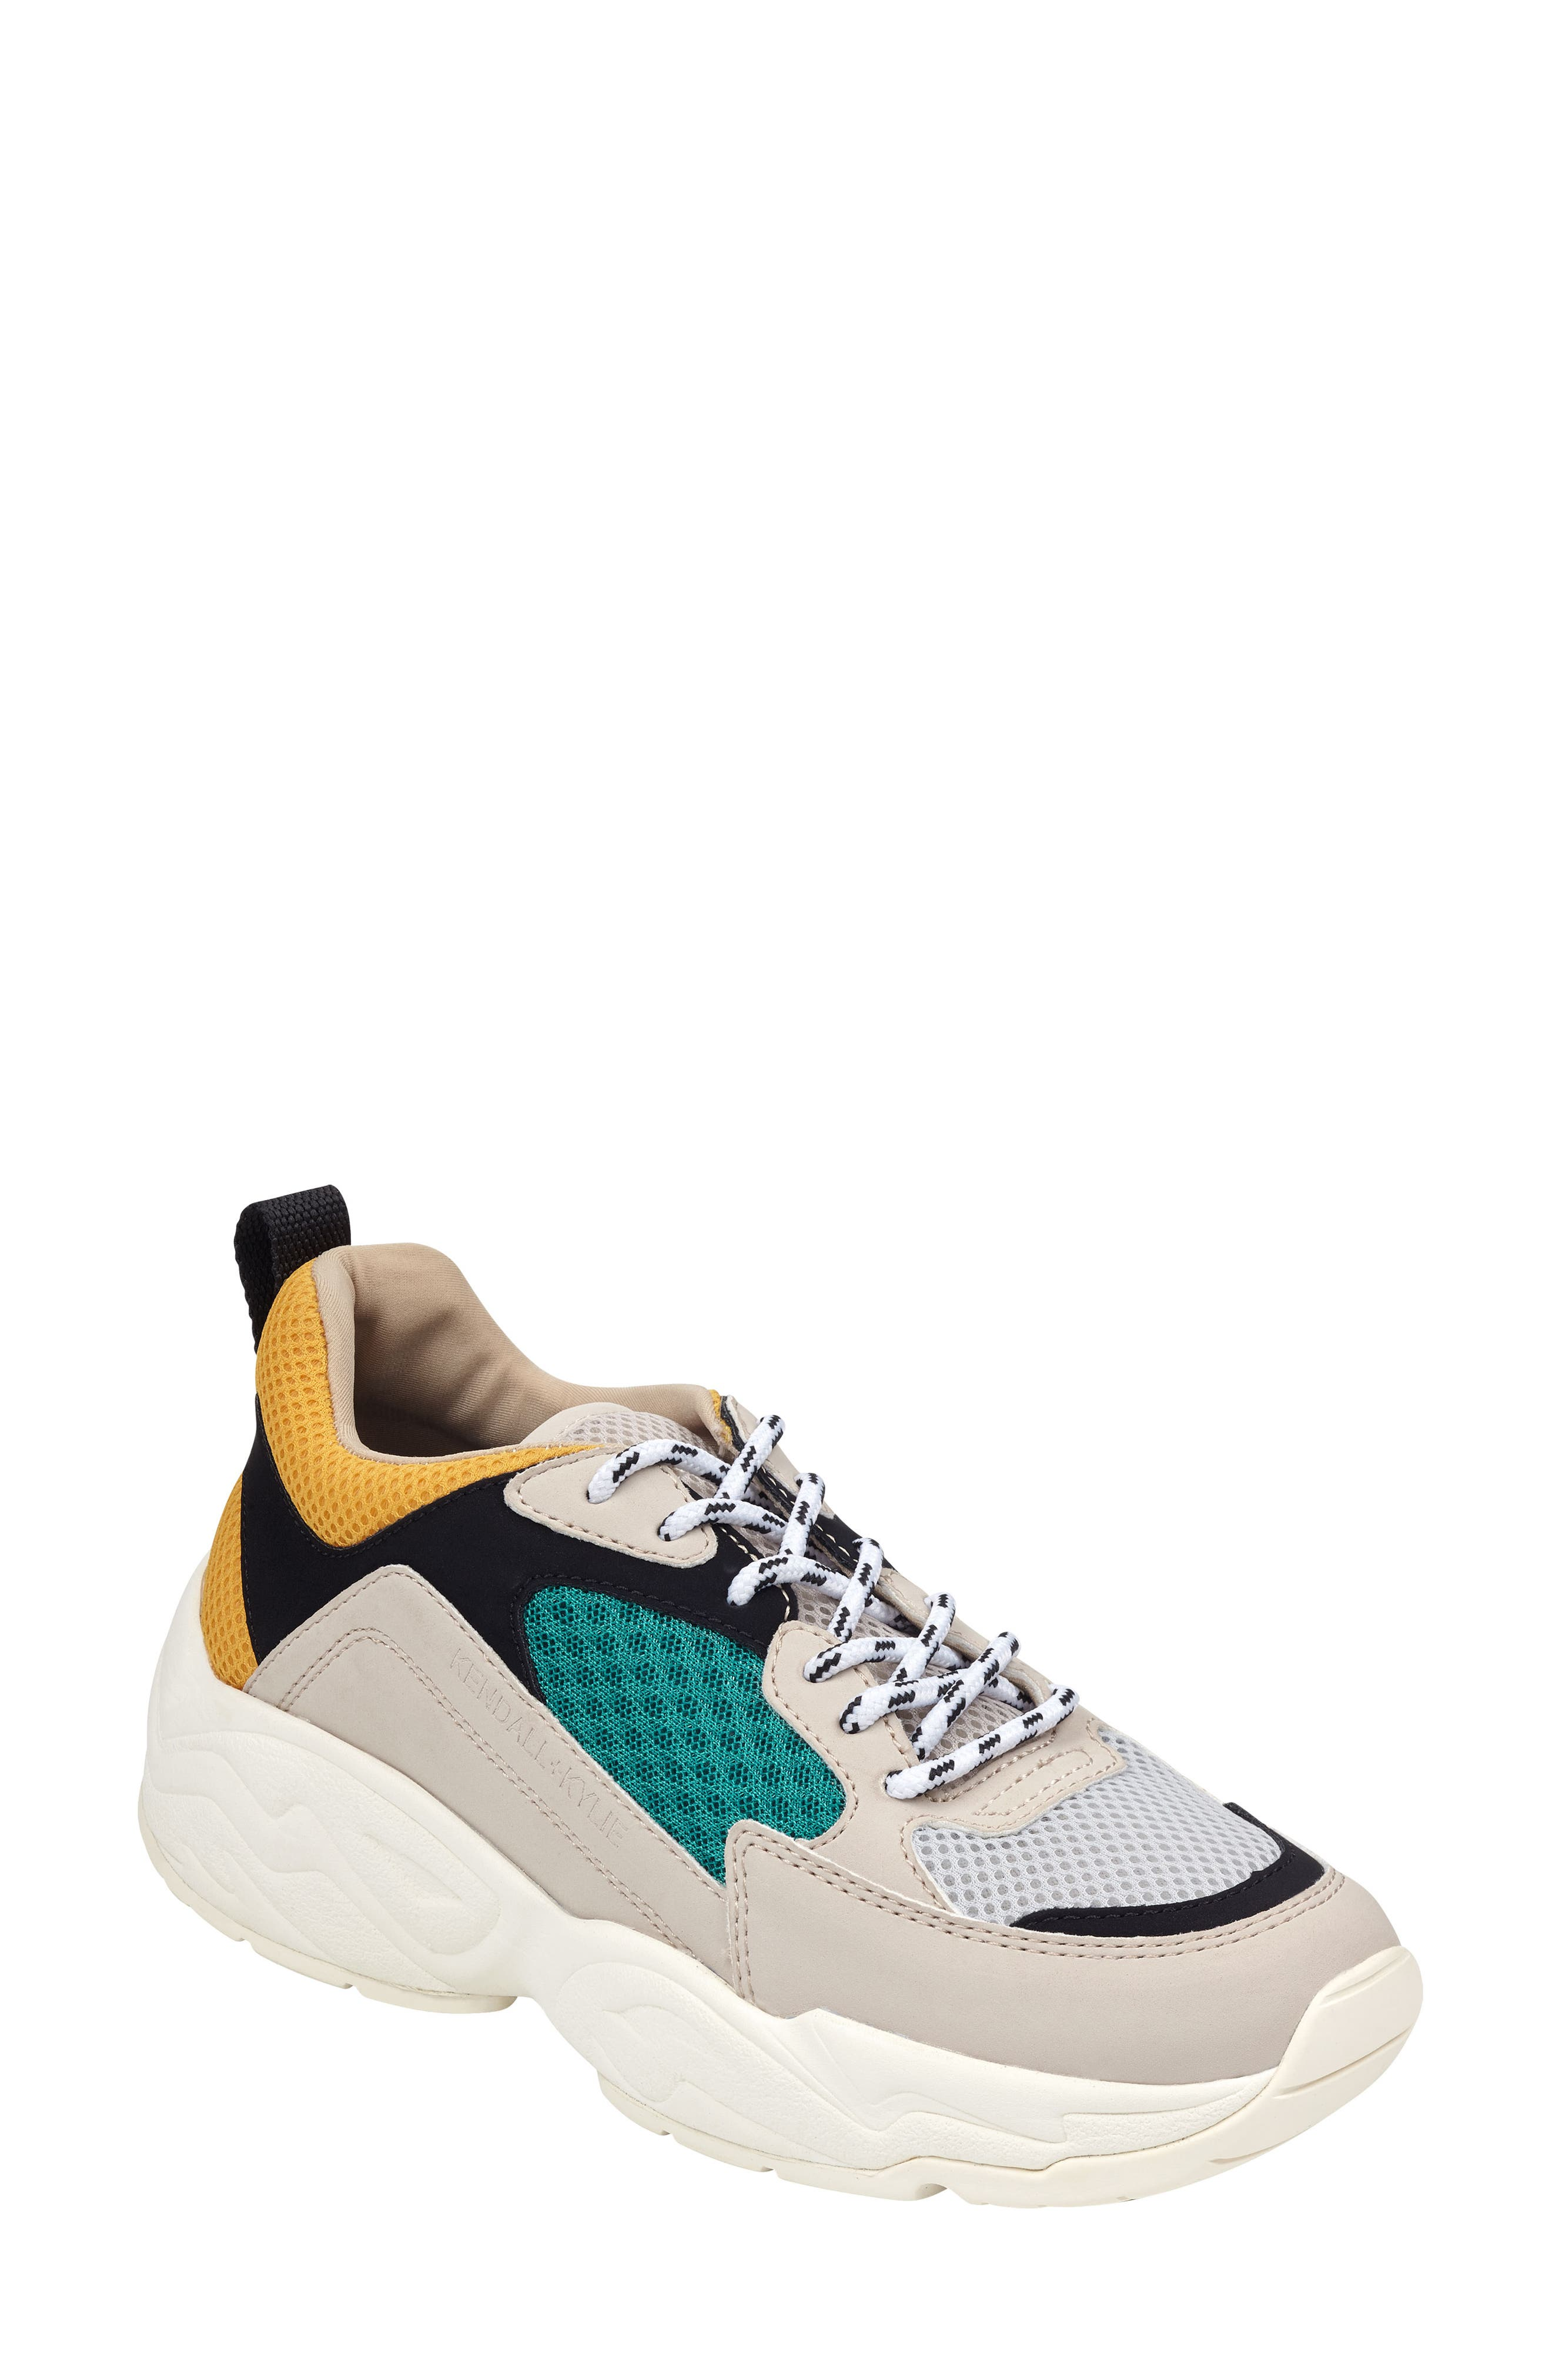 KENDALL + KYLIE Dad Sneaker, Main, color, 250